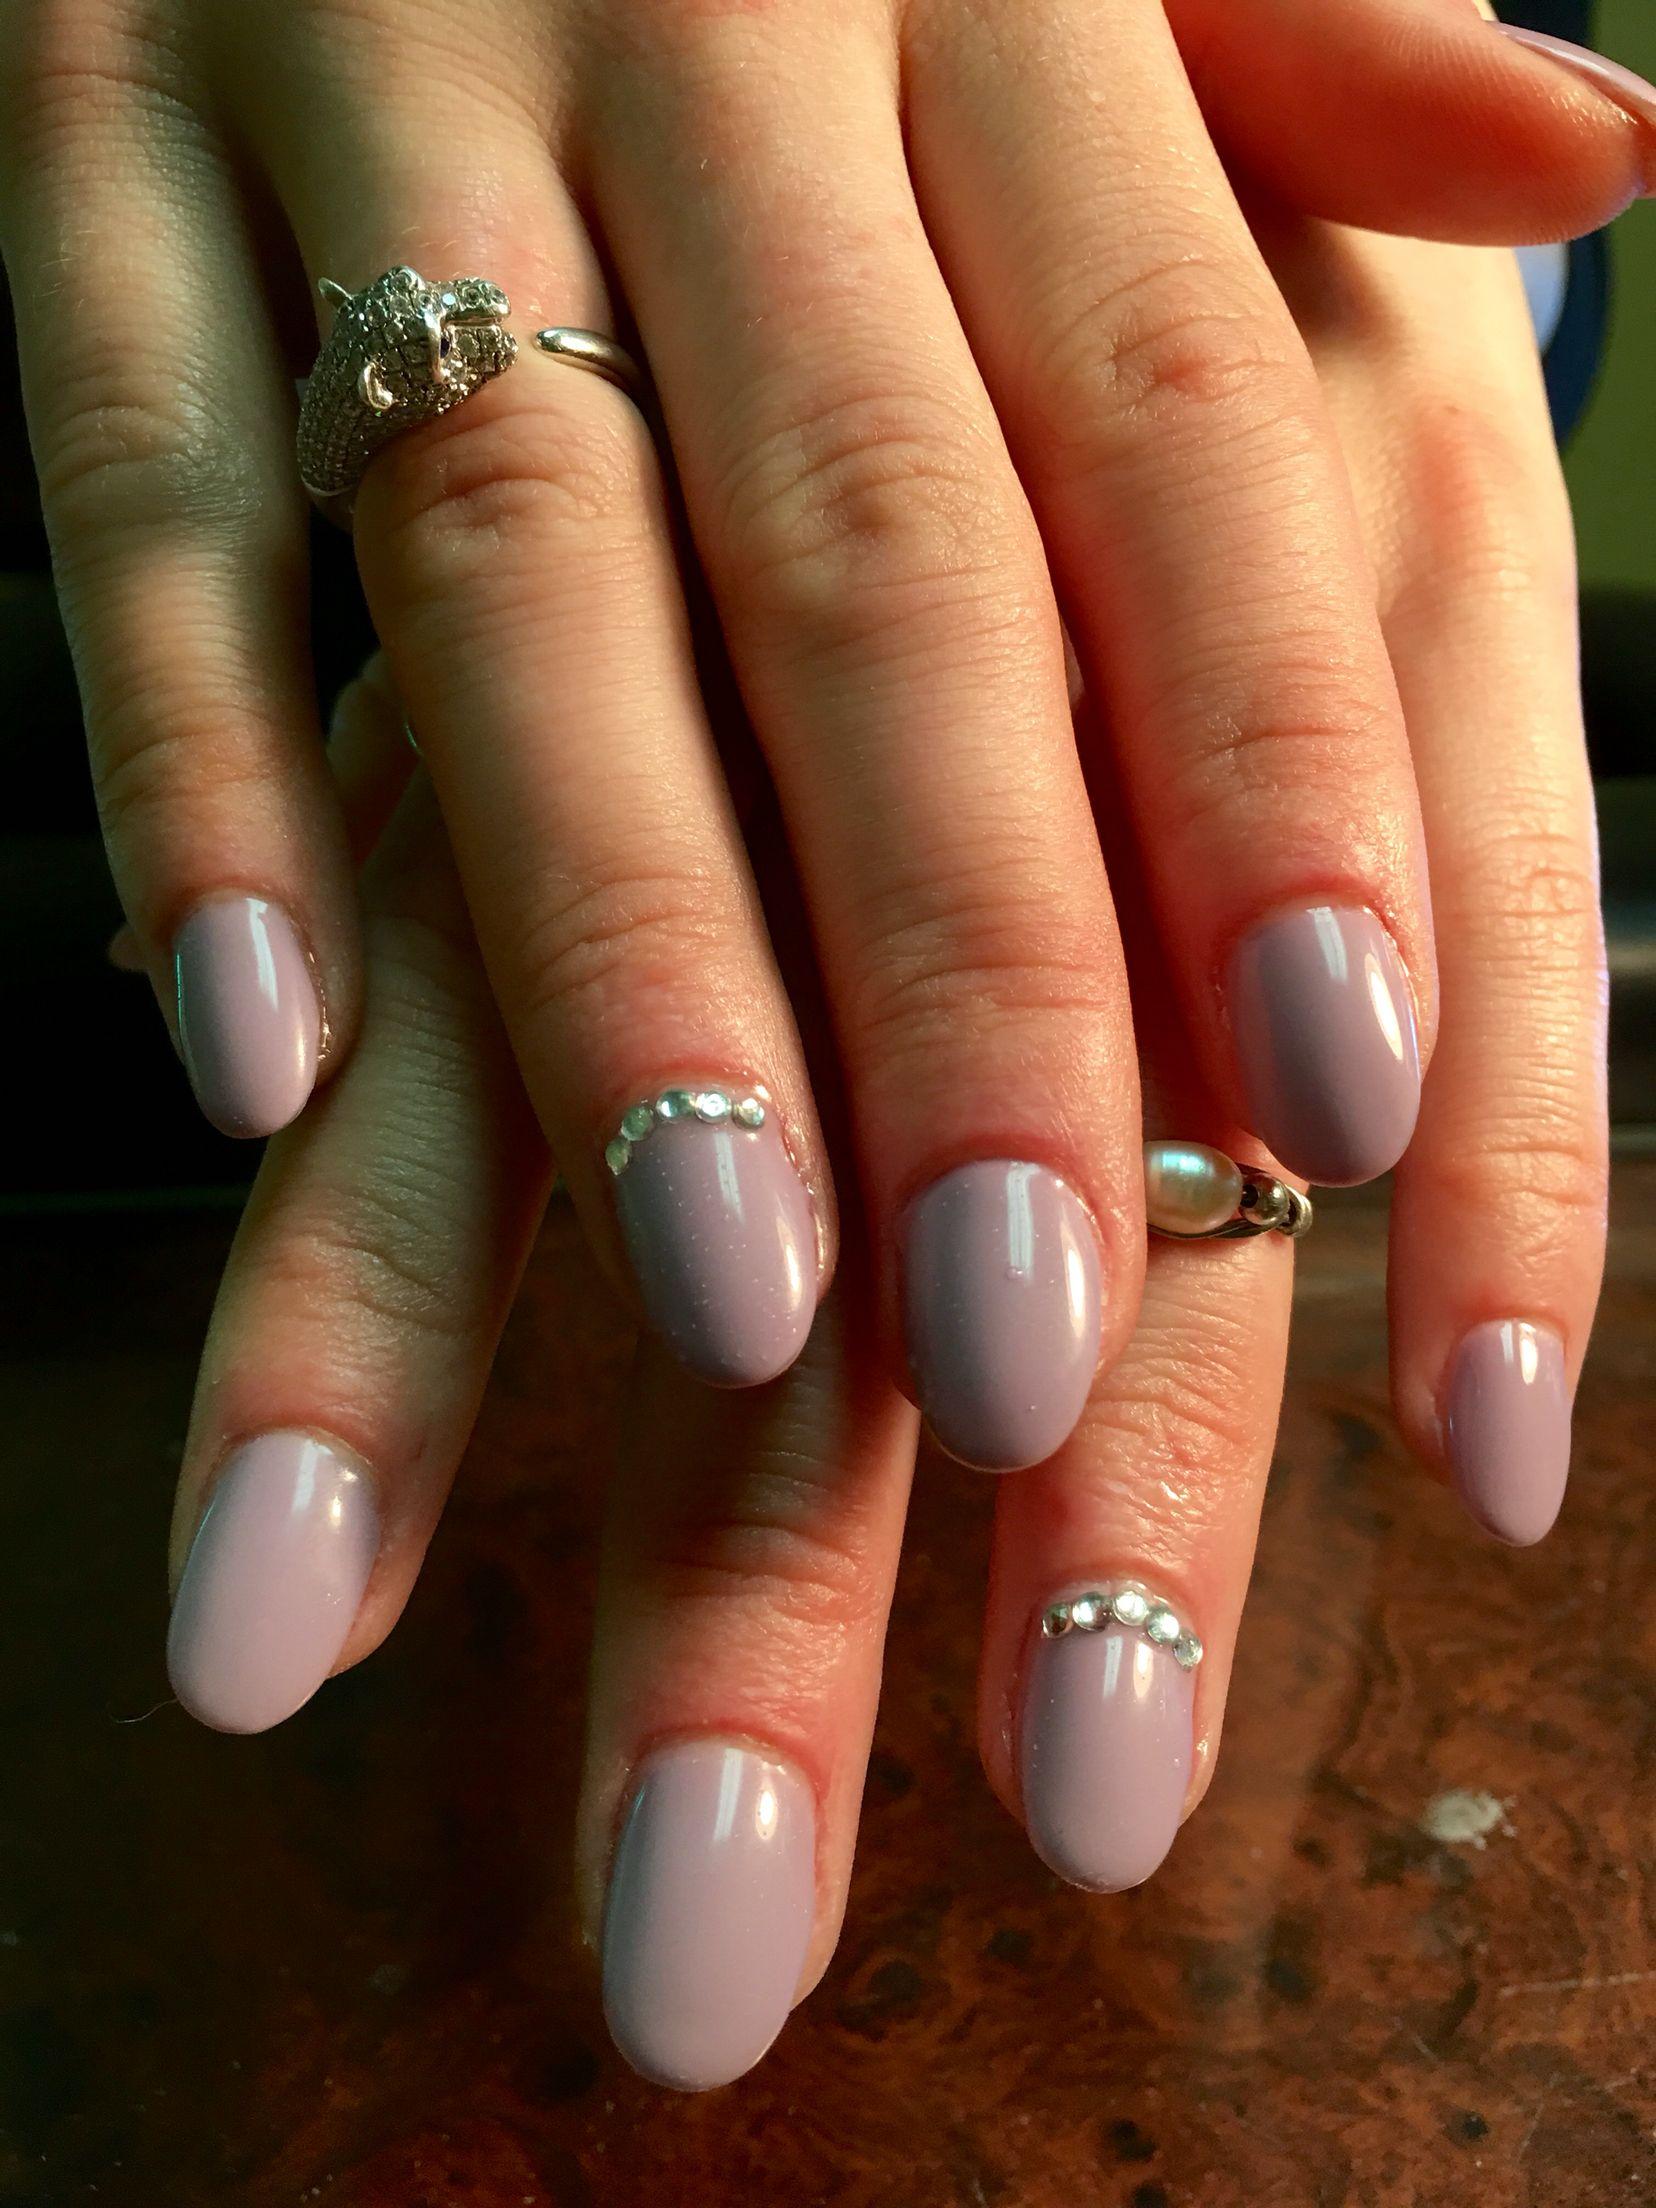 Oval/almond shaped gel nails in Cuccio \